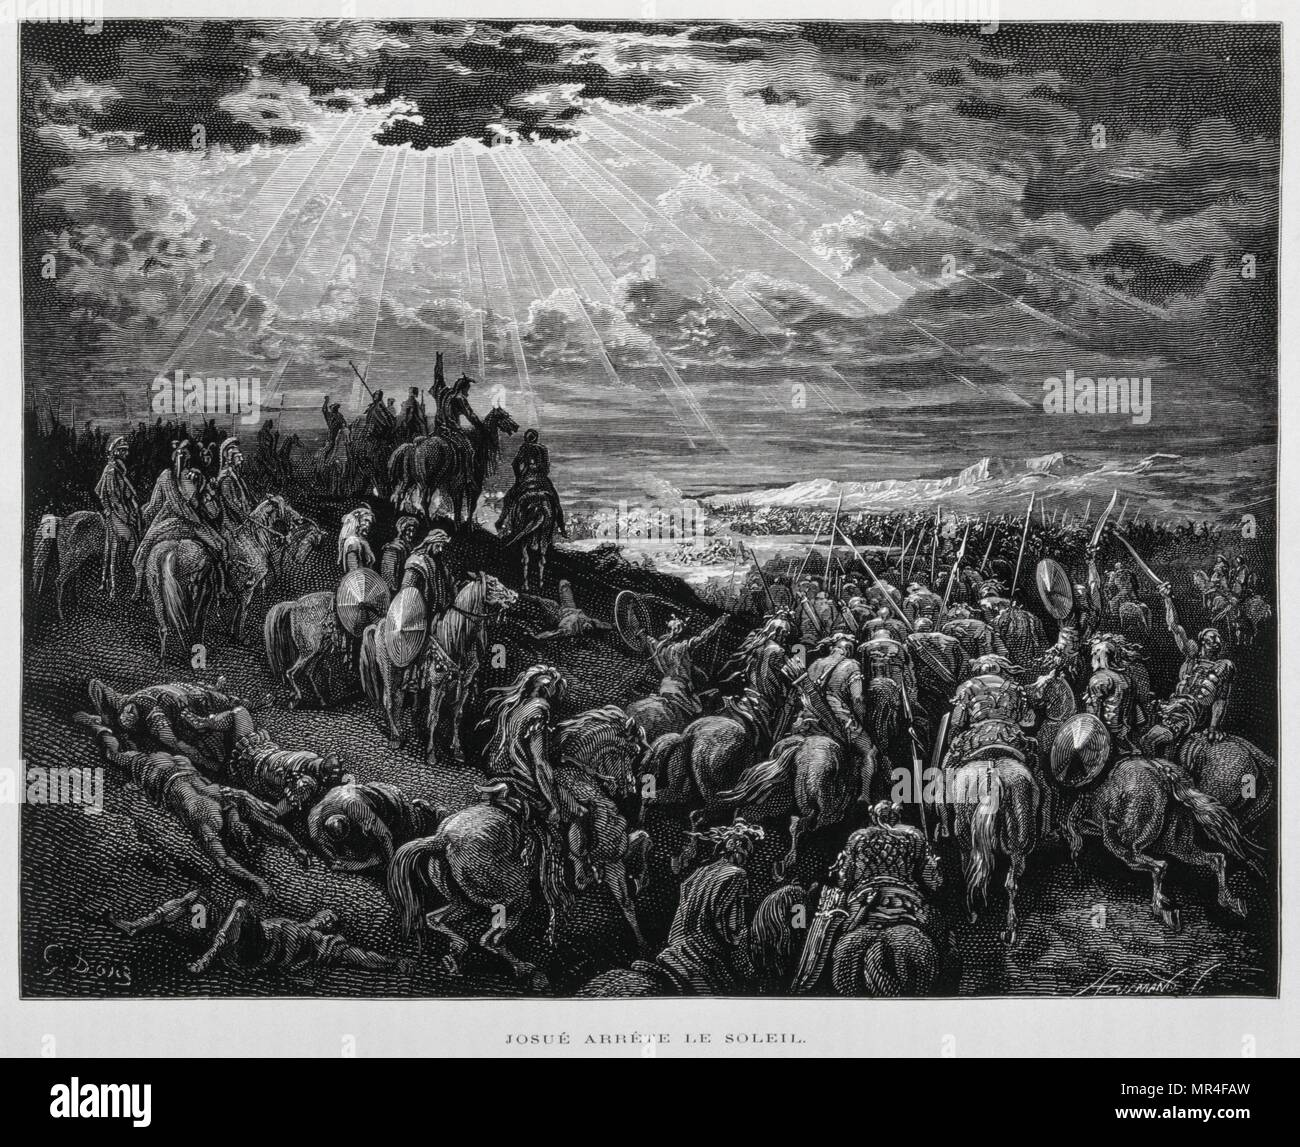 Joshua makes the sun stand still, Illustration from the Dore Bible 1866. In 1866, French artist & illustrator Gustave Dore (1832–1883) published a series of 241 wood engravings for a new deluxe edition of the 1843 French translation of the Vulgate Bible, popularly known as Bible de Tours. The new edition was known as La Grande Bible de Tours & its illustrations were immensely successful. Joshua said to the Lord in the presence of Israel 'O sun, stand still over Gibeon, O moon, over the Valley of Aijalon.' So the sun stood still & the moon stopped, till the nation avenged itself on its enemies - Stock Image